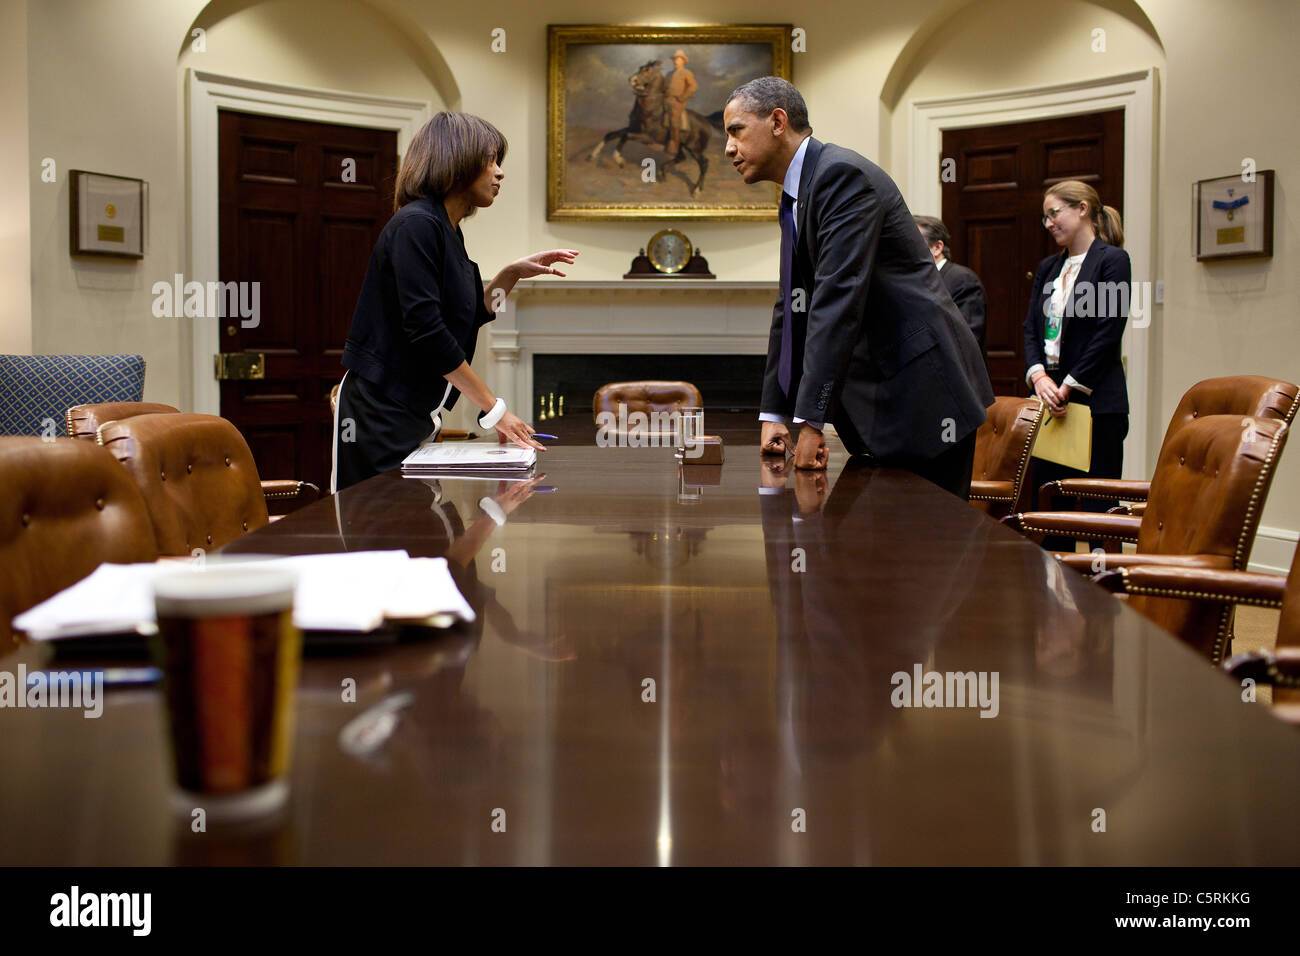 President Barack Obama talks with Melody Barnes, Domestic Policy Council Director - Stock Image